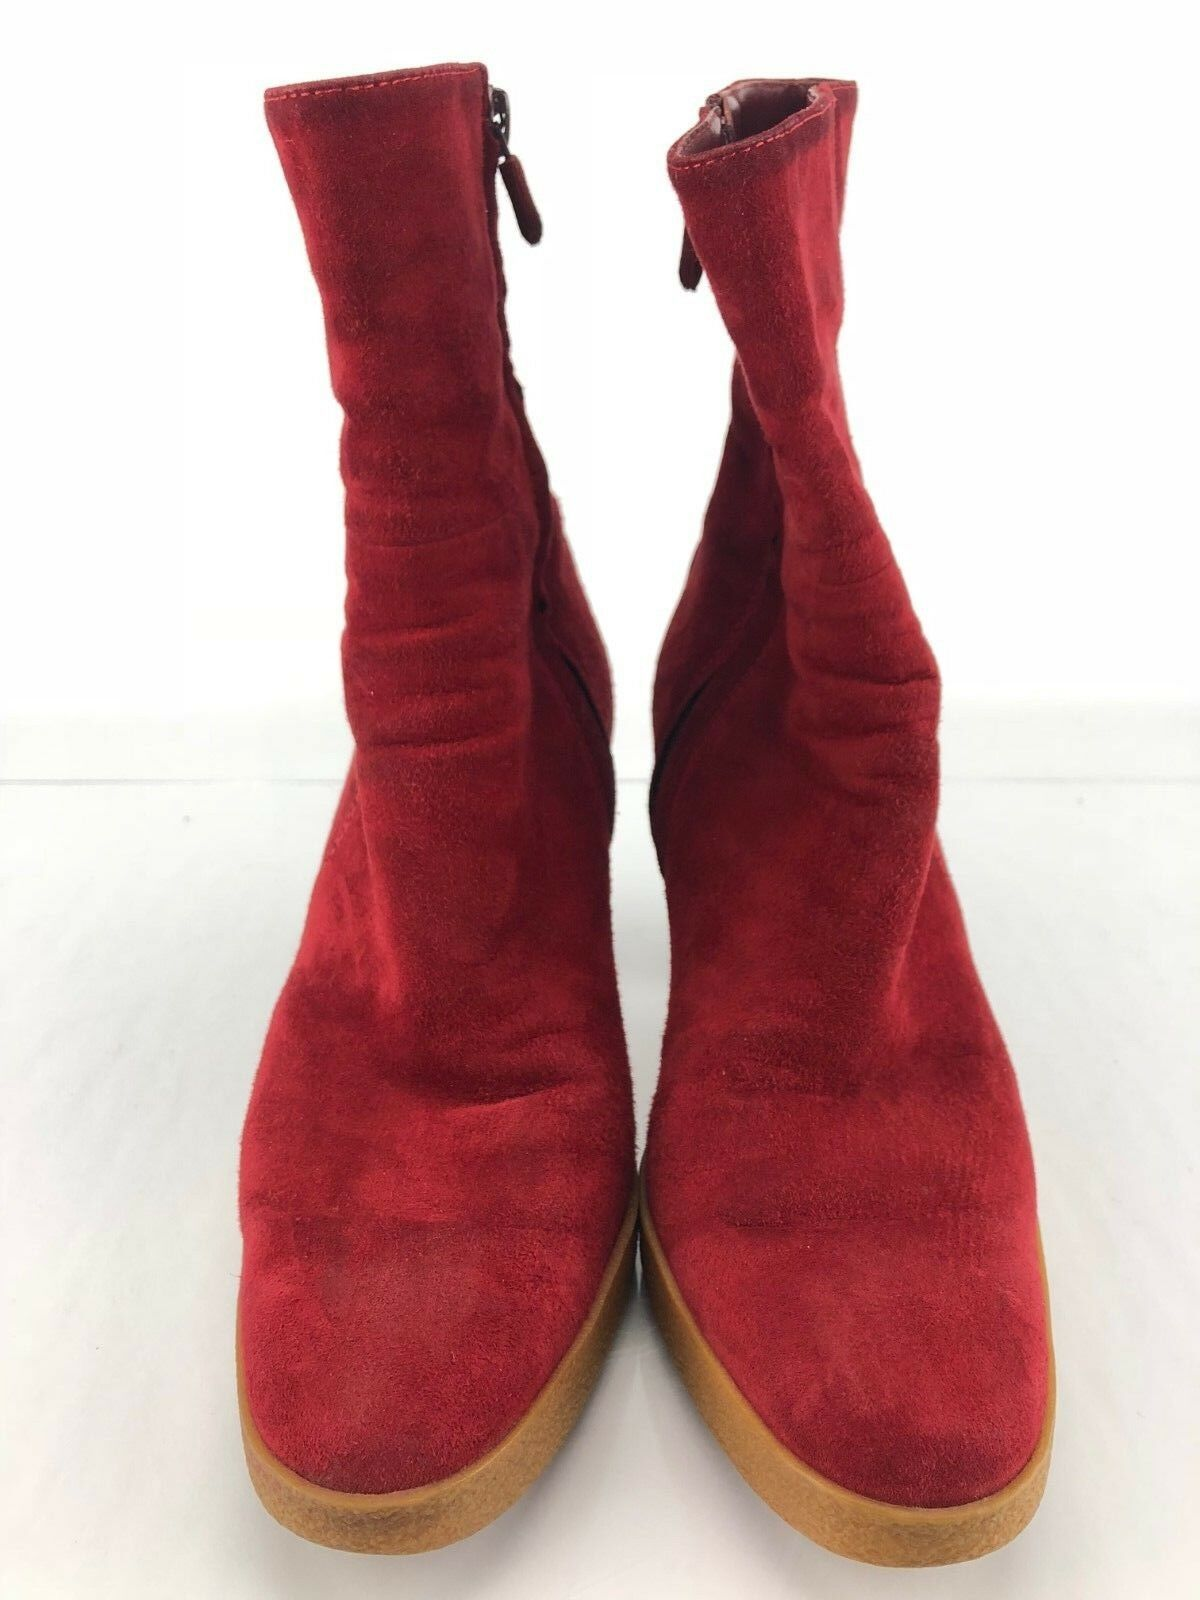 Tods High Heel Boots - Red Leather Side Side Side Zip Ankle Booties Women's Sz 36.5 US 6 c5eb1d